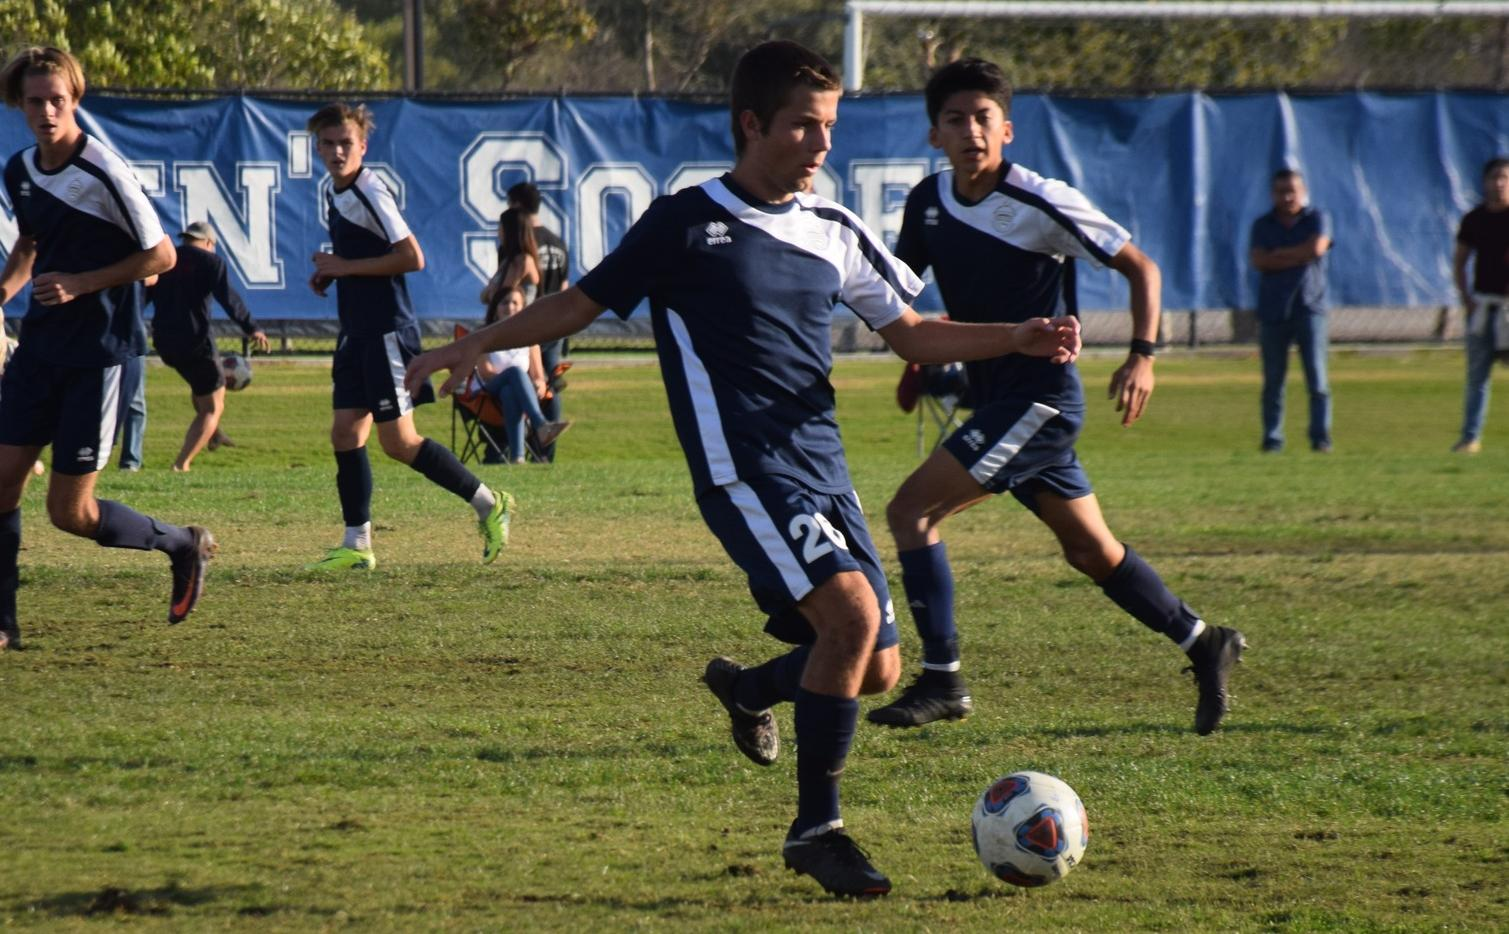 Men's soccer team storms back to earn regional playoff win